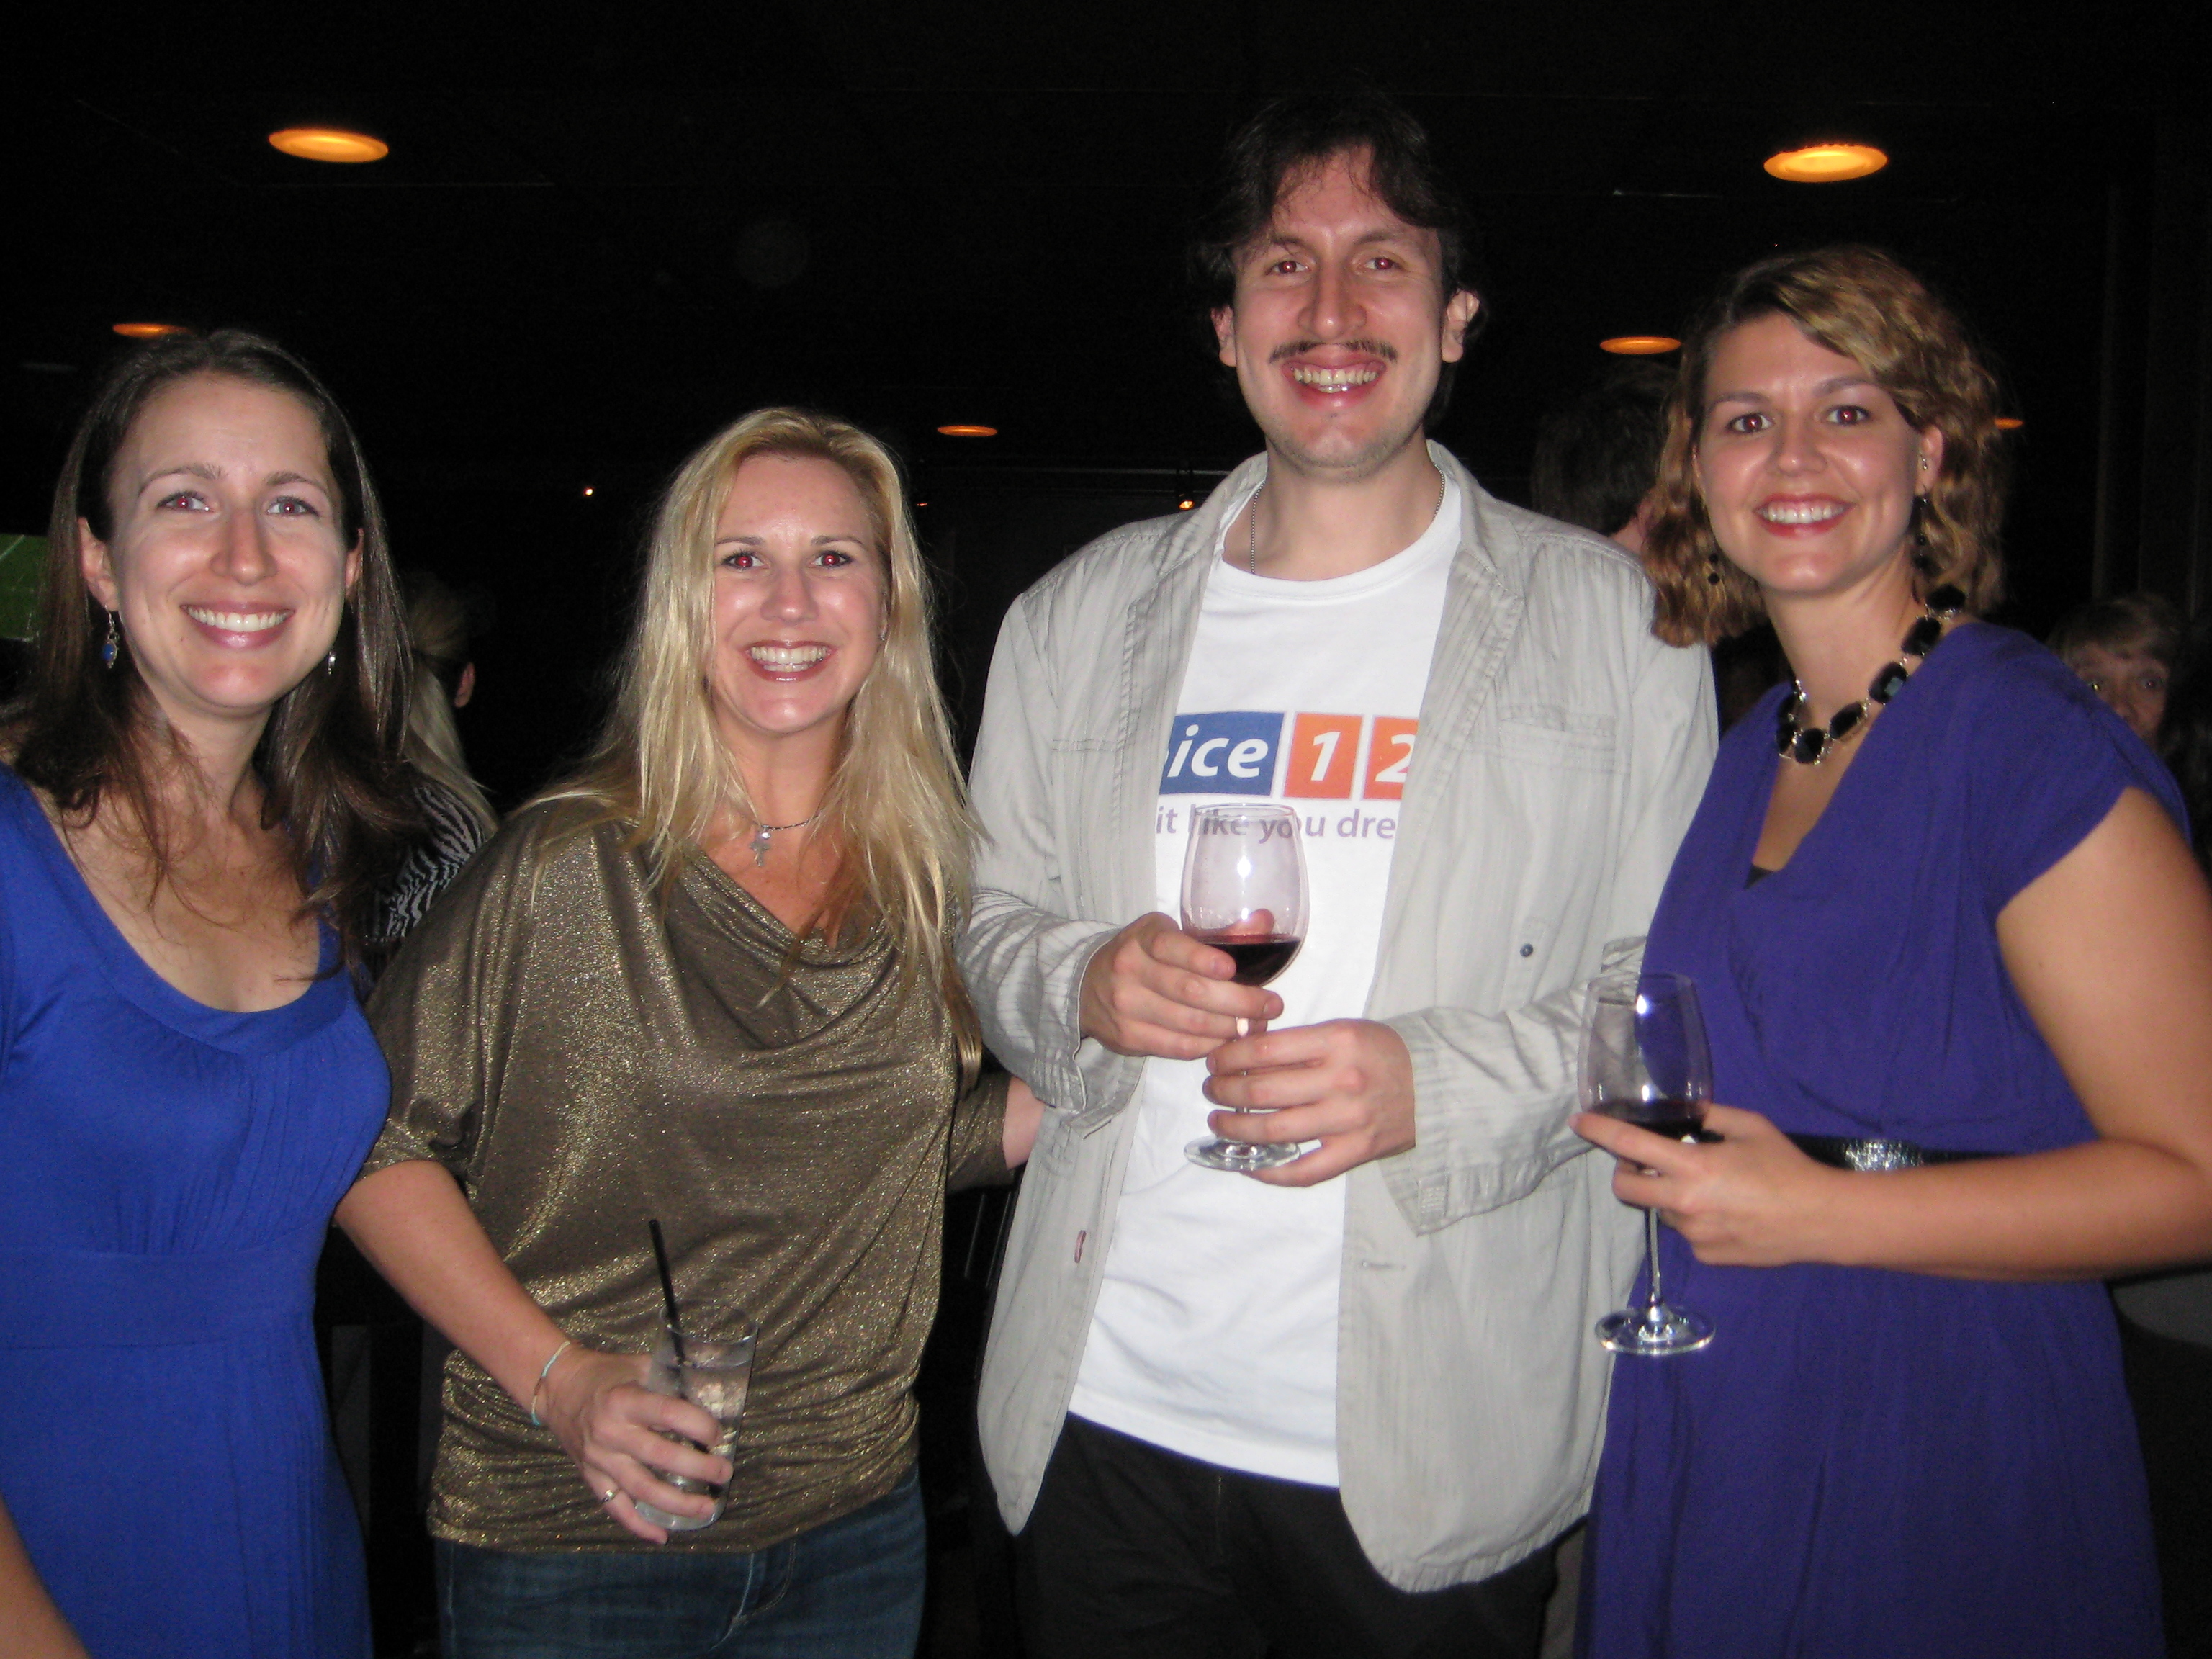 Voiceover Meetup Fort Meyers Florida with Voice123 talent